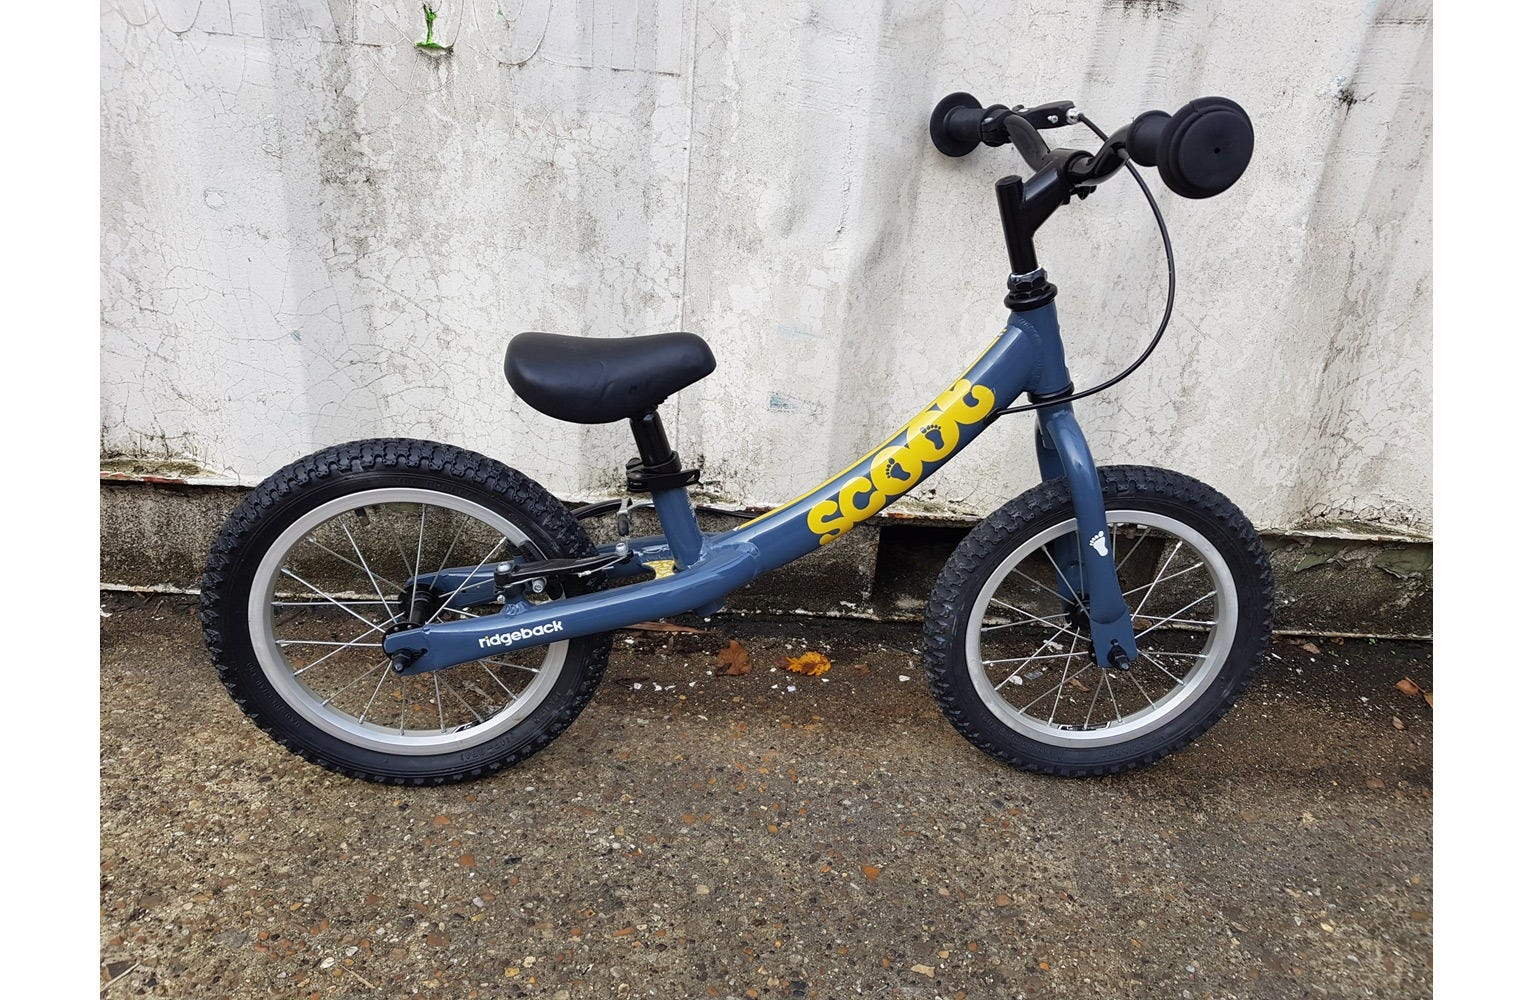 Ridgeback Scoot XL beginner Ex Brand Sample Bike - Blue